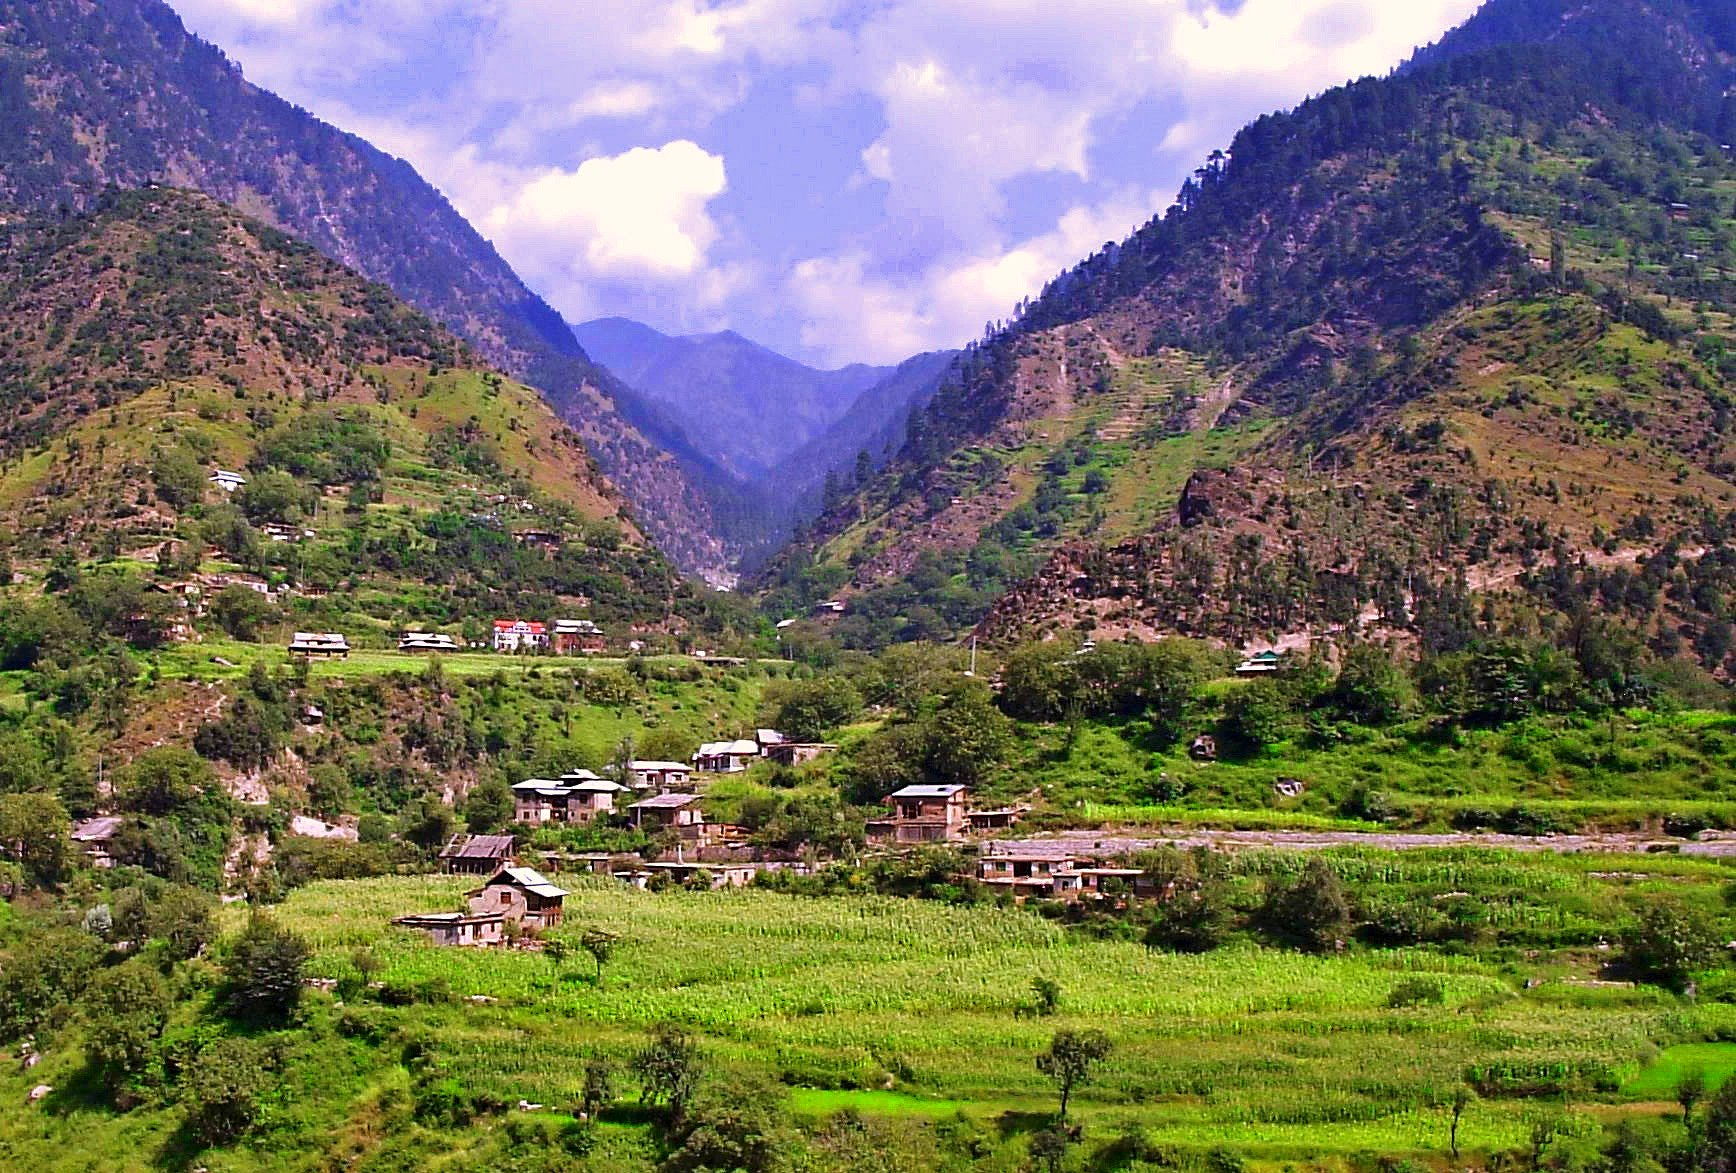 jammu kashmir Jammu and kashmir (dogri: जम्मू और कश्मीर urdu: مقبوضہ کشمیر) is the northernmost state of indiait is situated mostly in the himalayan mountains.